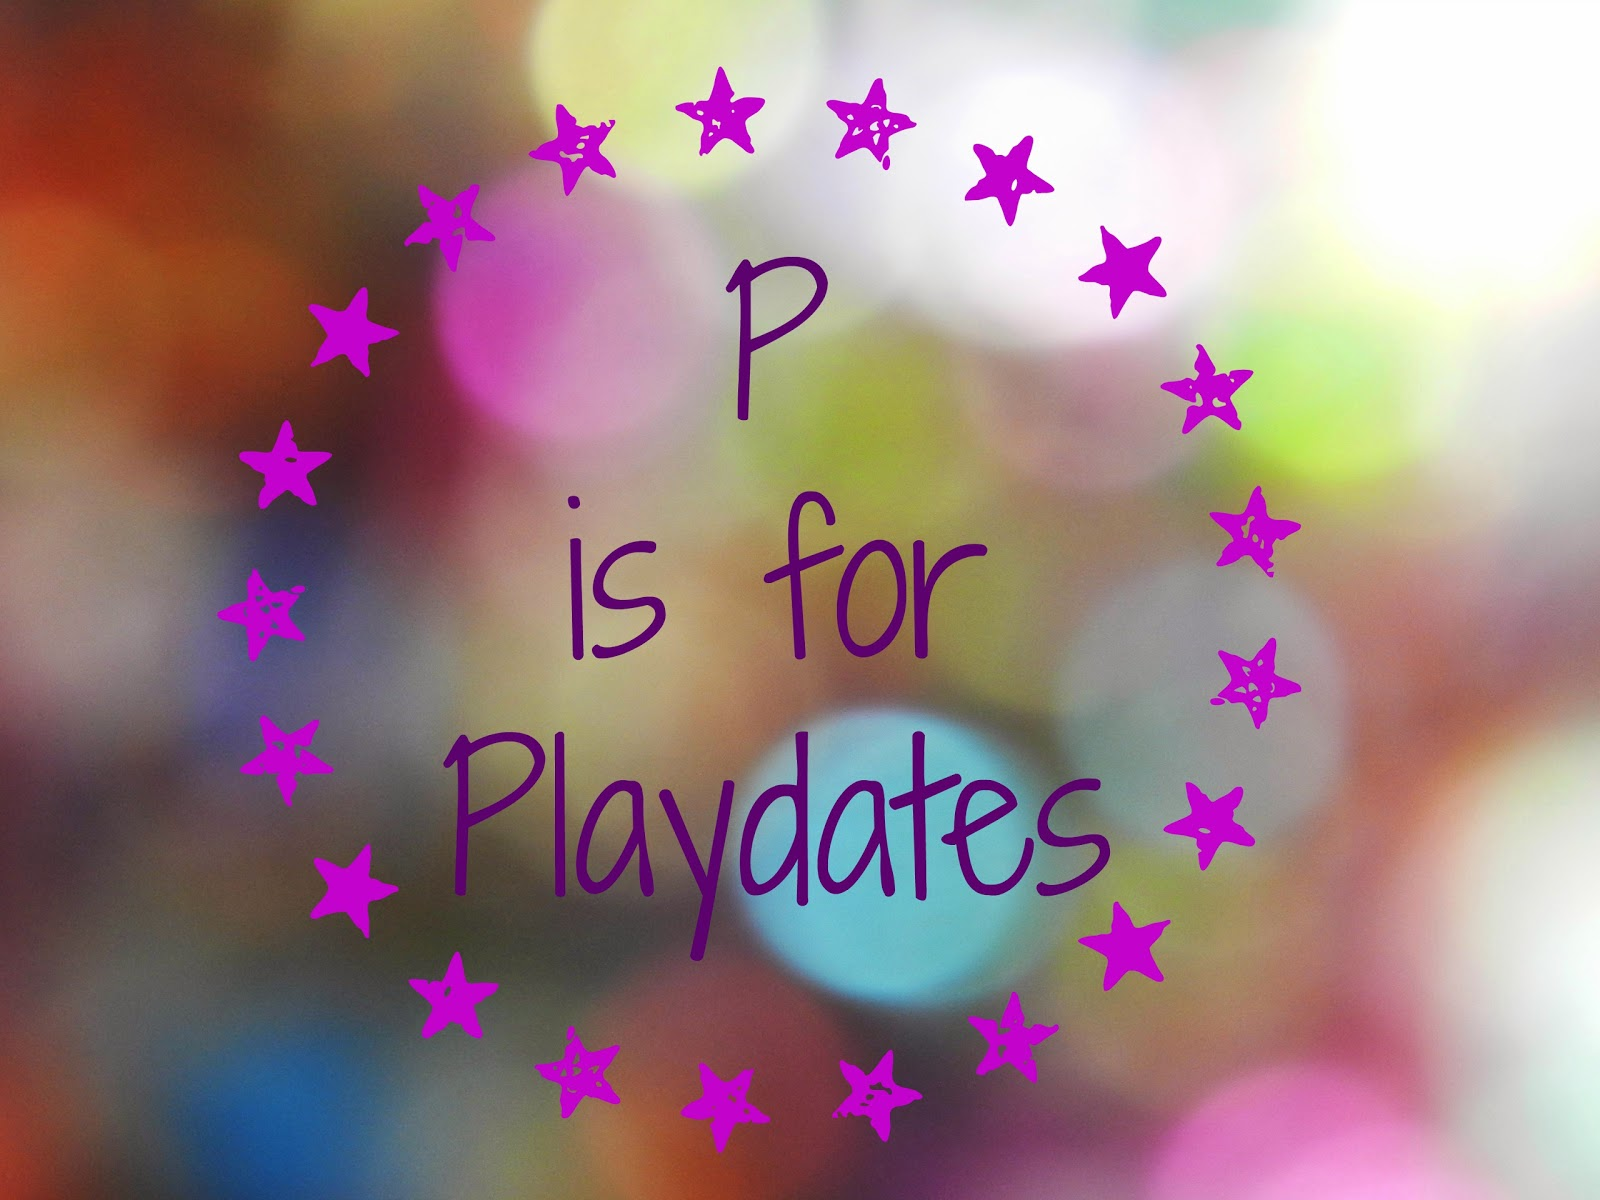 P is for Playdates